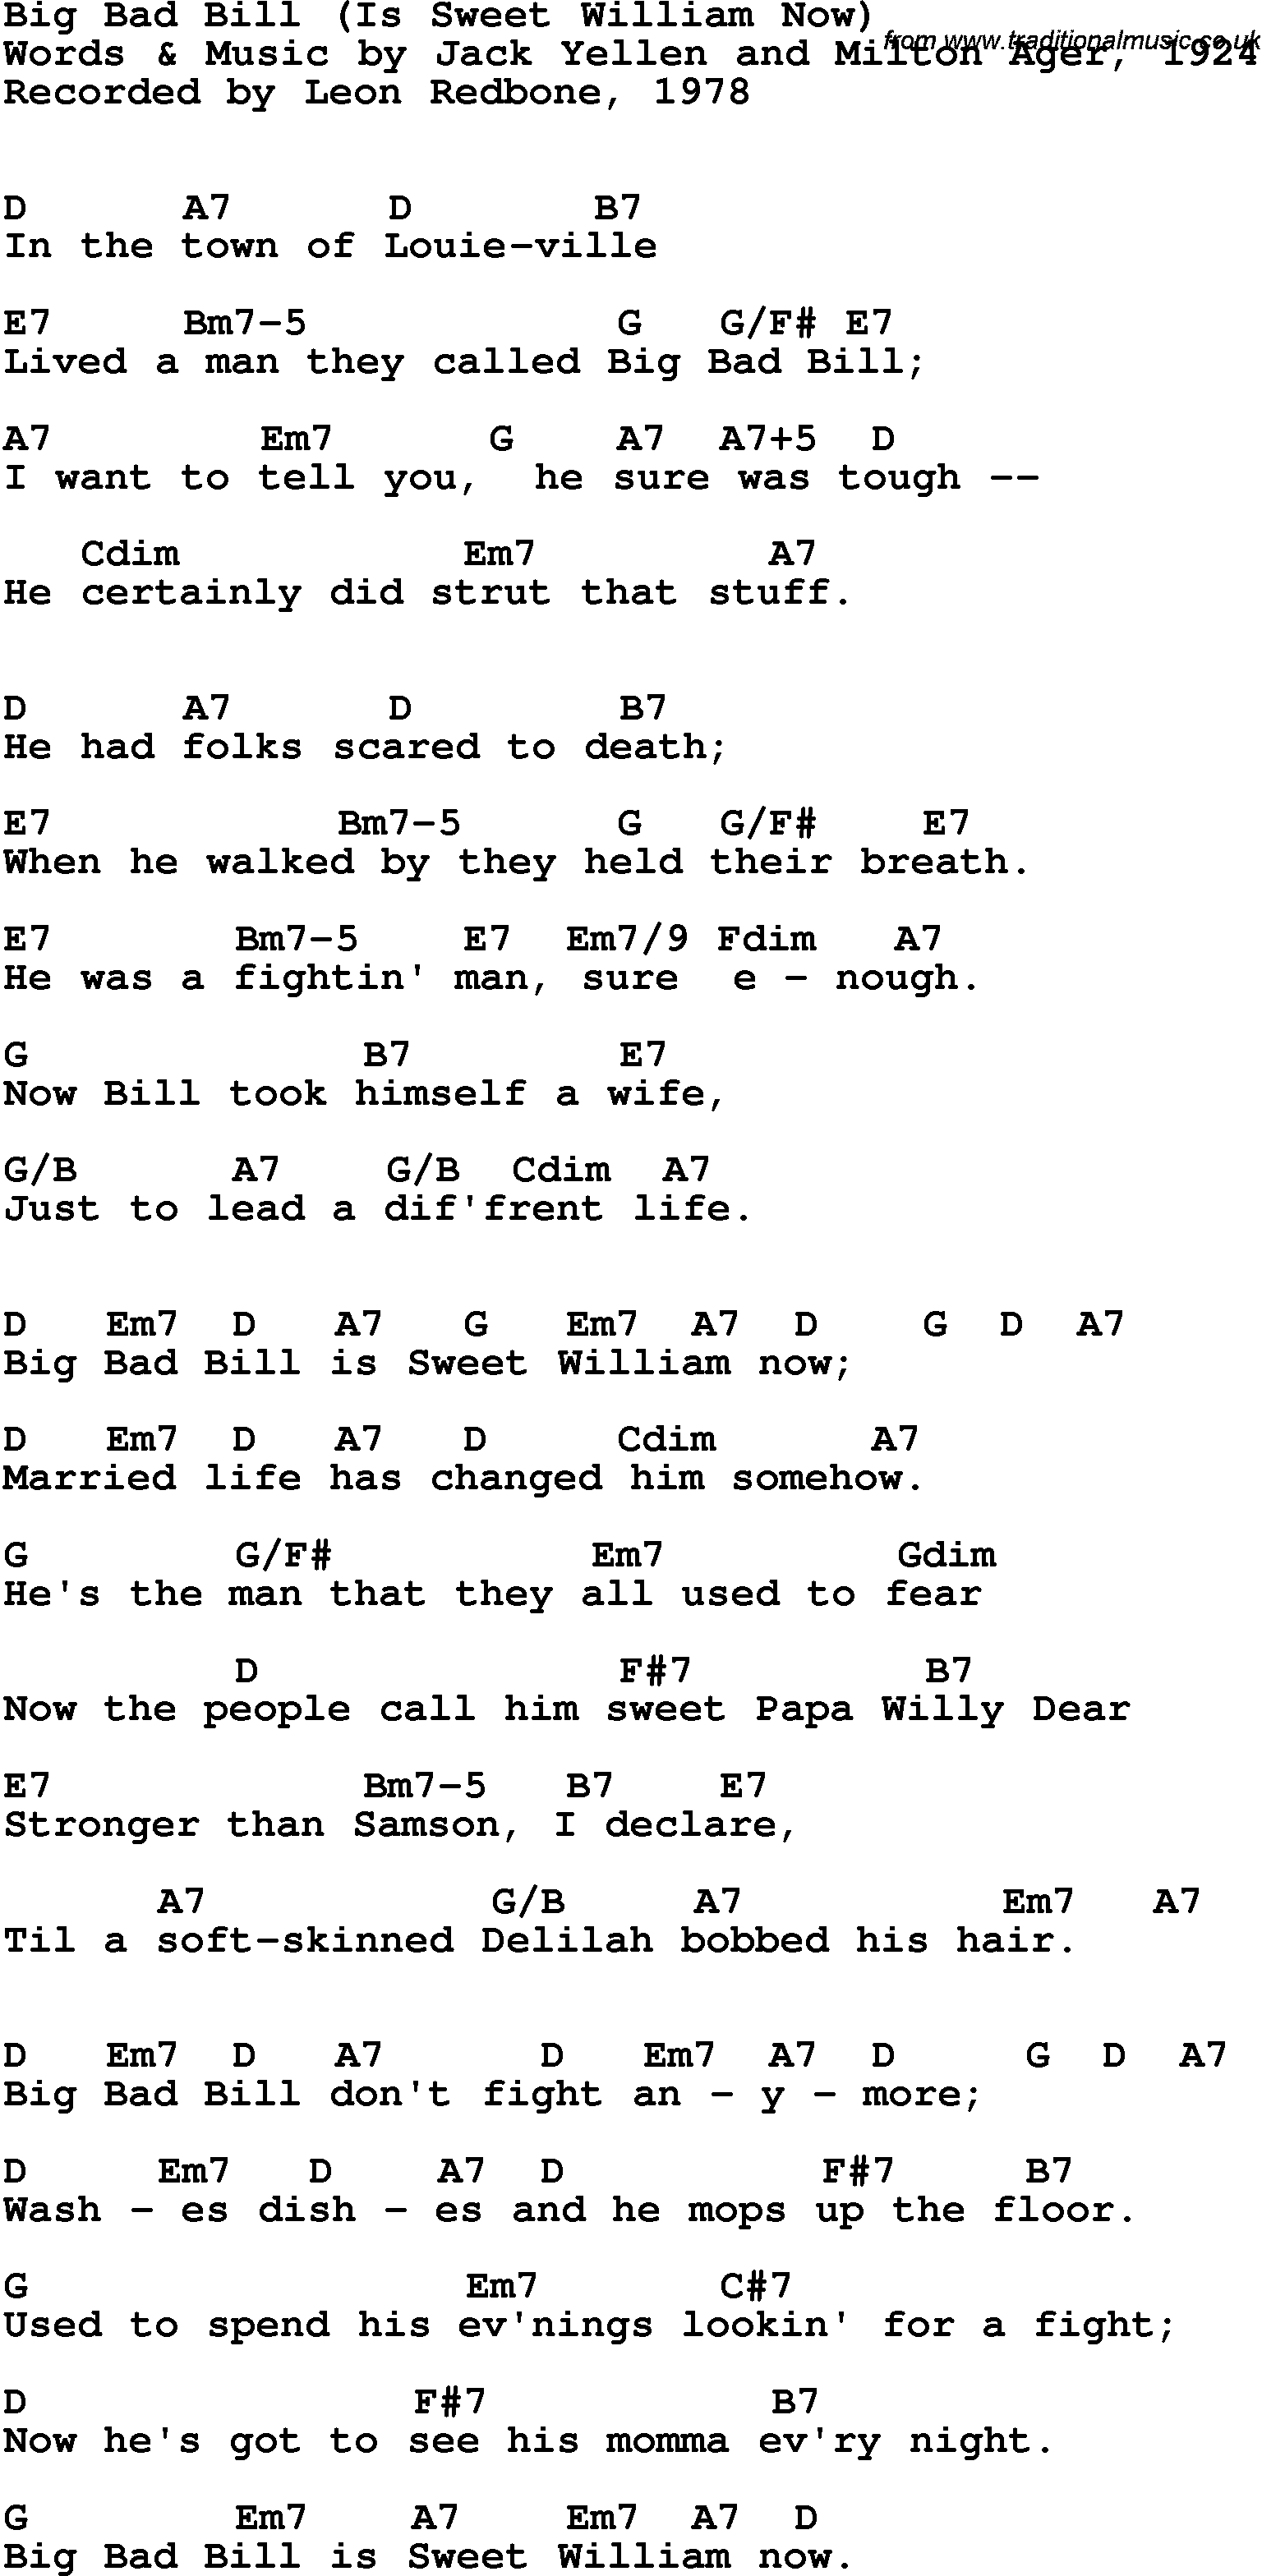 Song Lyrics With Guitar Chords For Big Bad Bill Is Sweet William